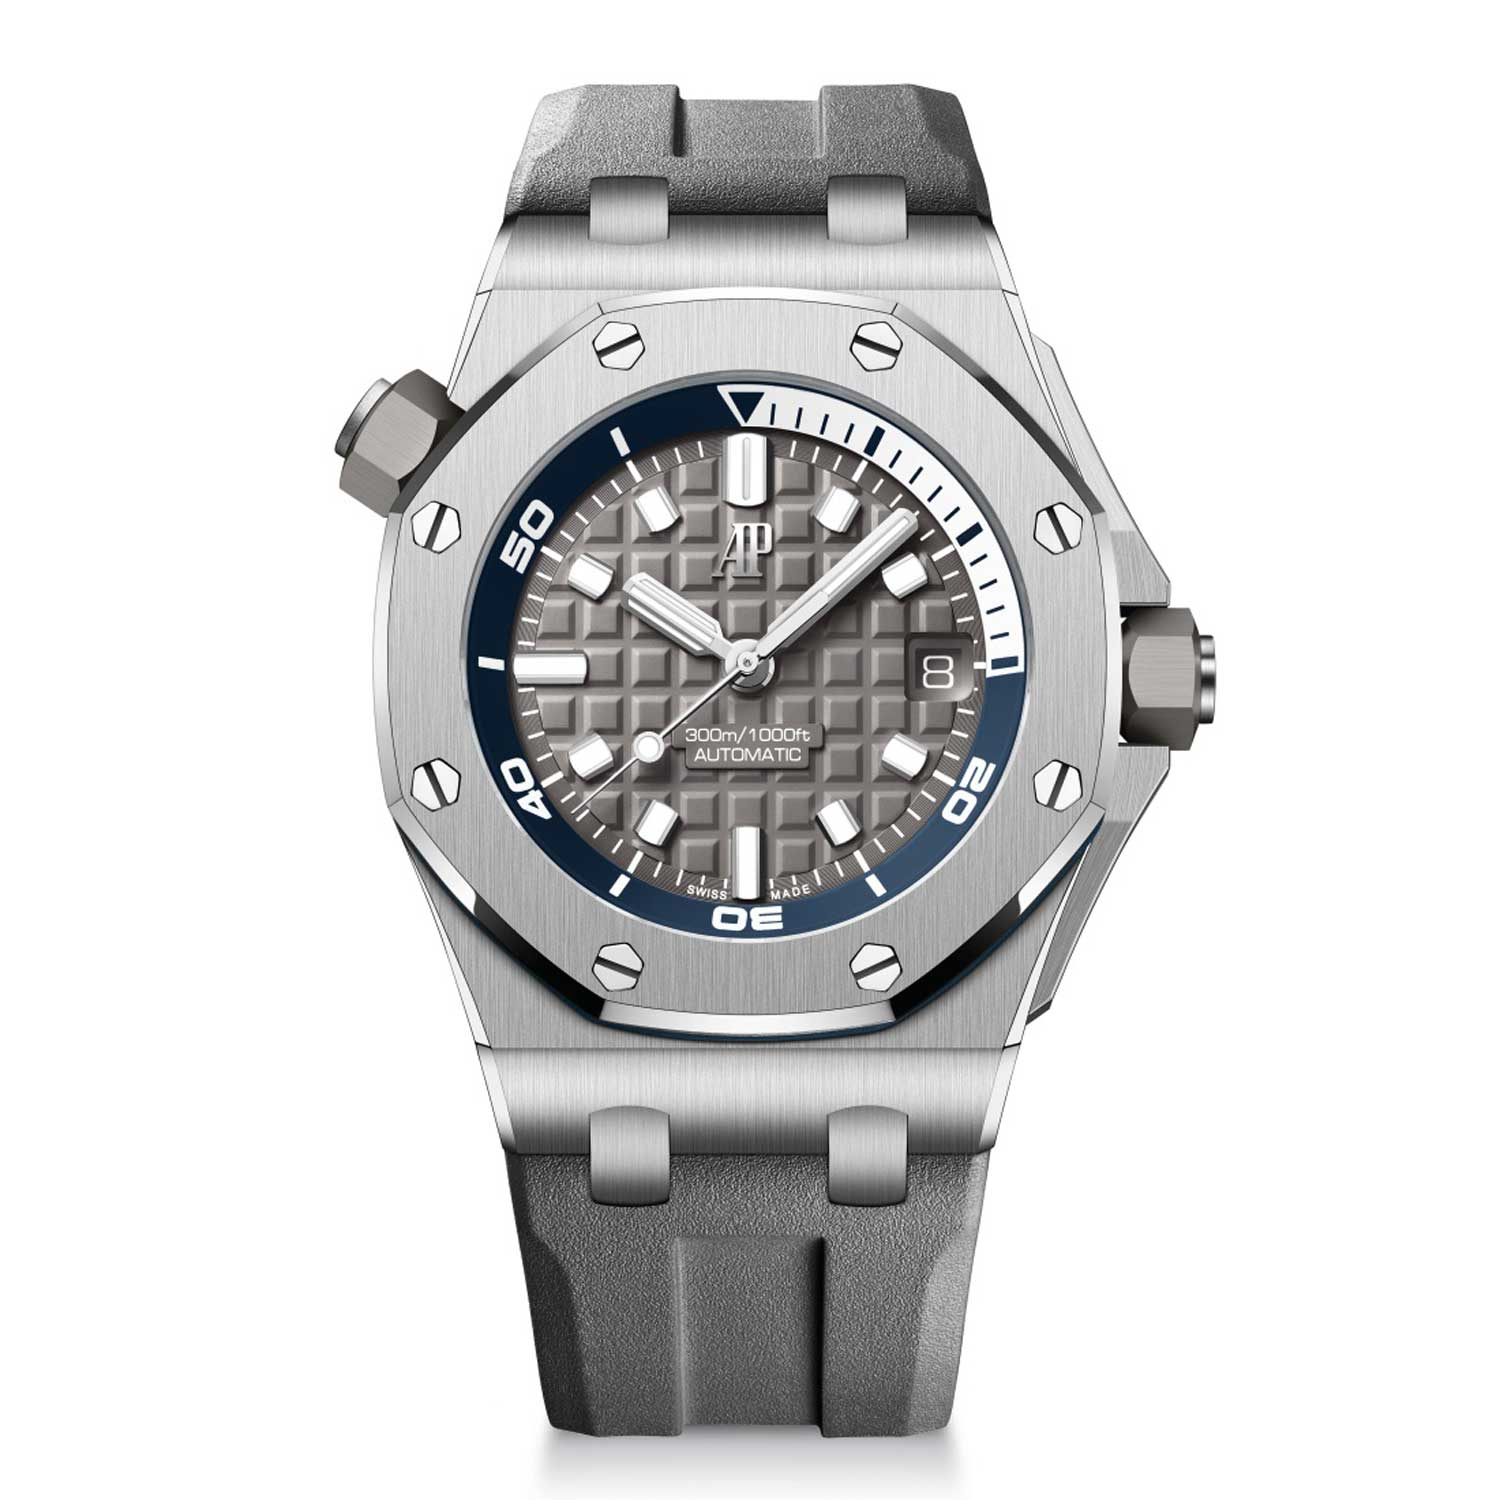 """The Royal Oak Offshore Diver collection is now available in some really cool colours. Seen here is the model with titanium case with grey ceramic bezel, grey """"Méga Tapisserie"""" dial and an interchangeable rubber strap."""